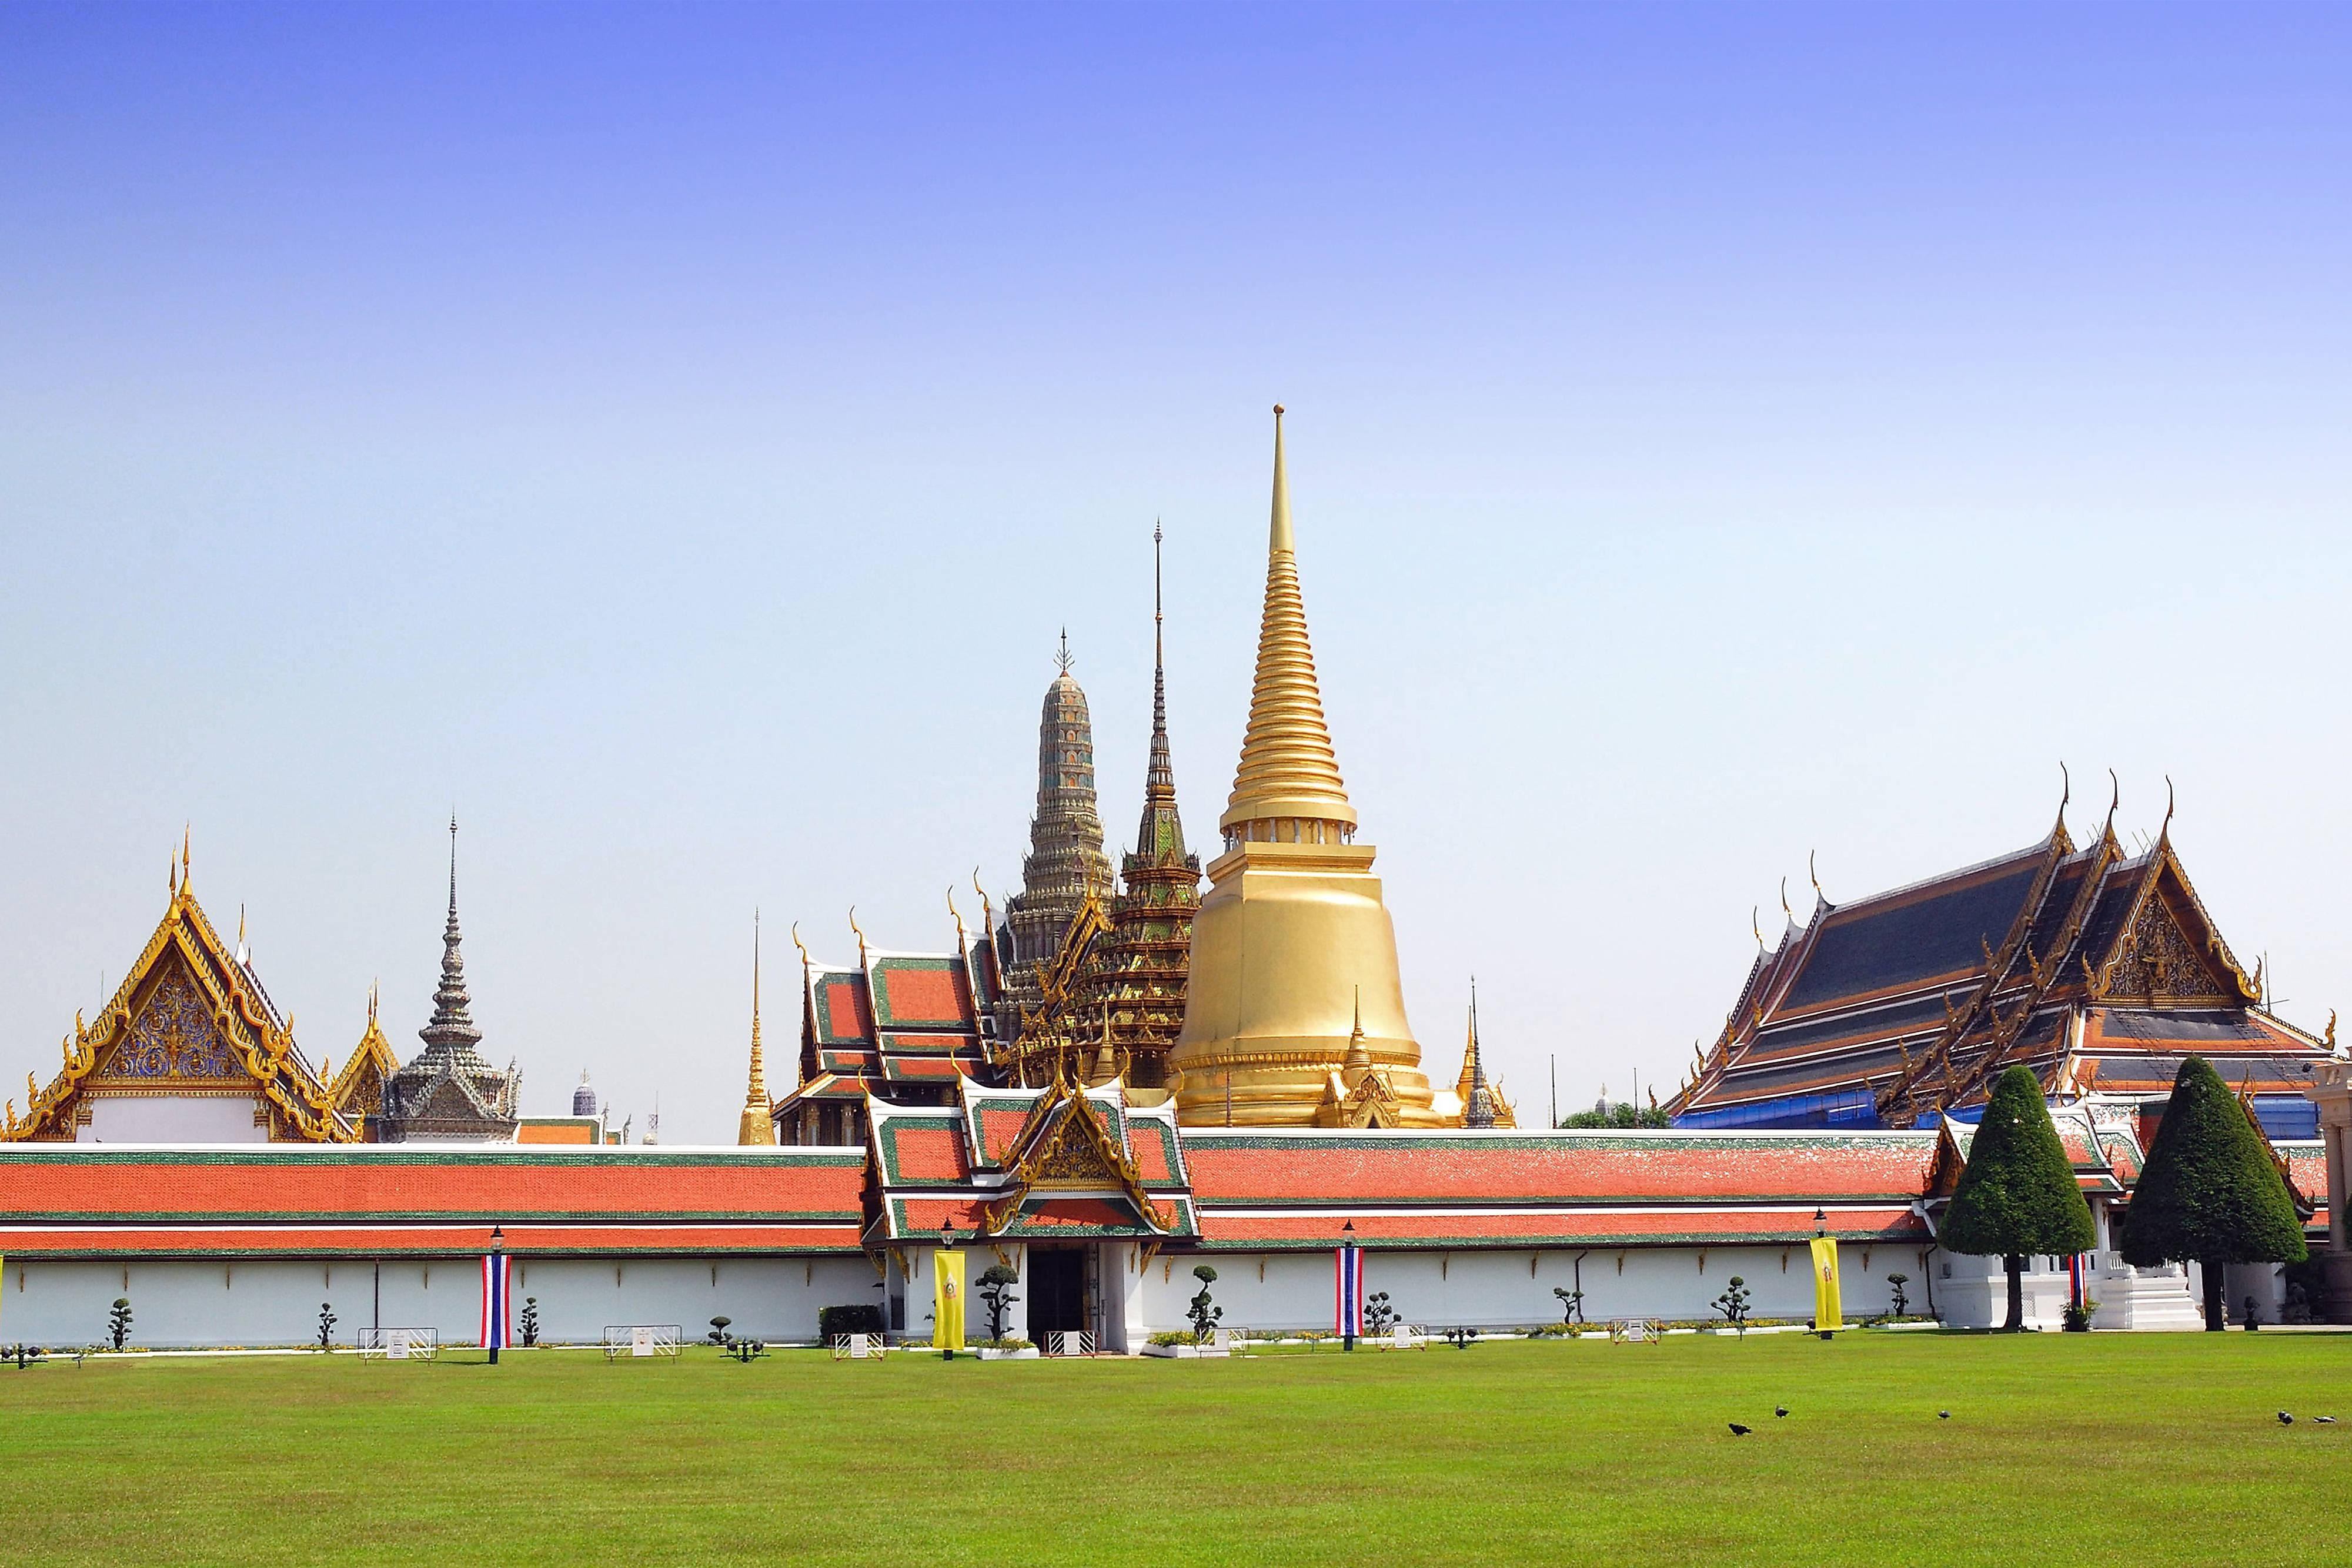 The nearby Grand Palace